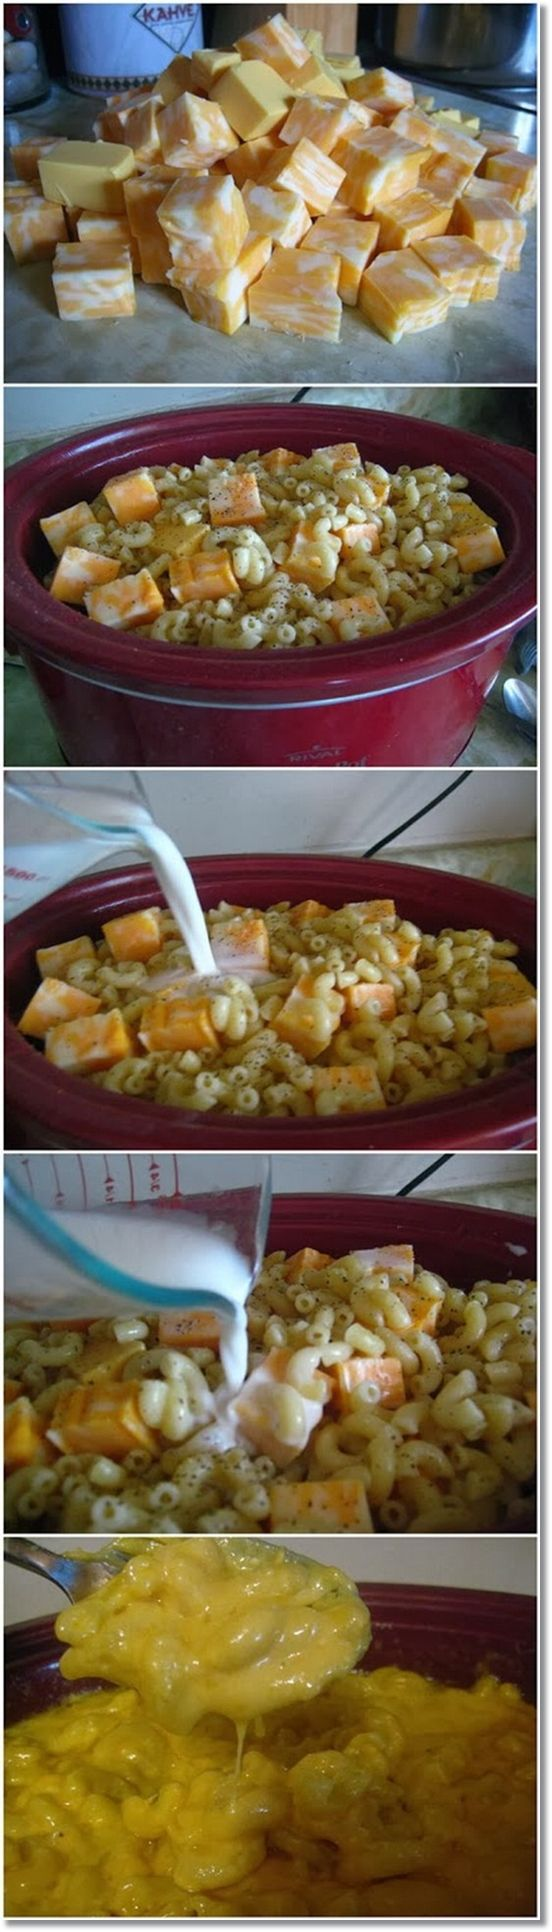 Crock pot mac and cheese. Very heavy, but so cheesy and yummy. I will make this again, but with a few minor changes.